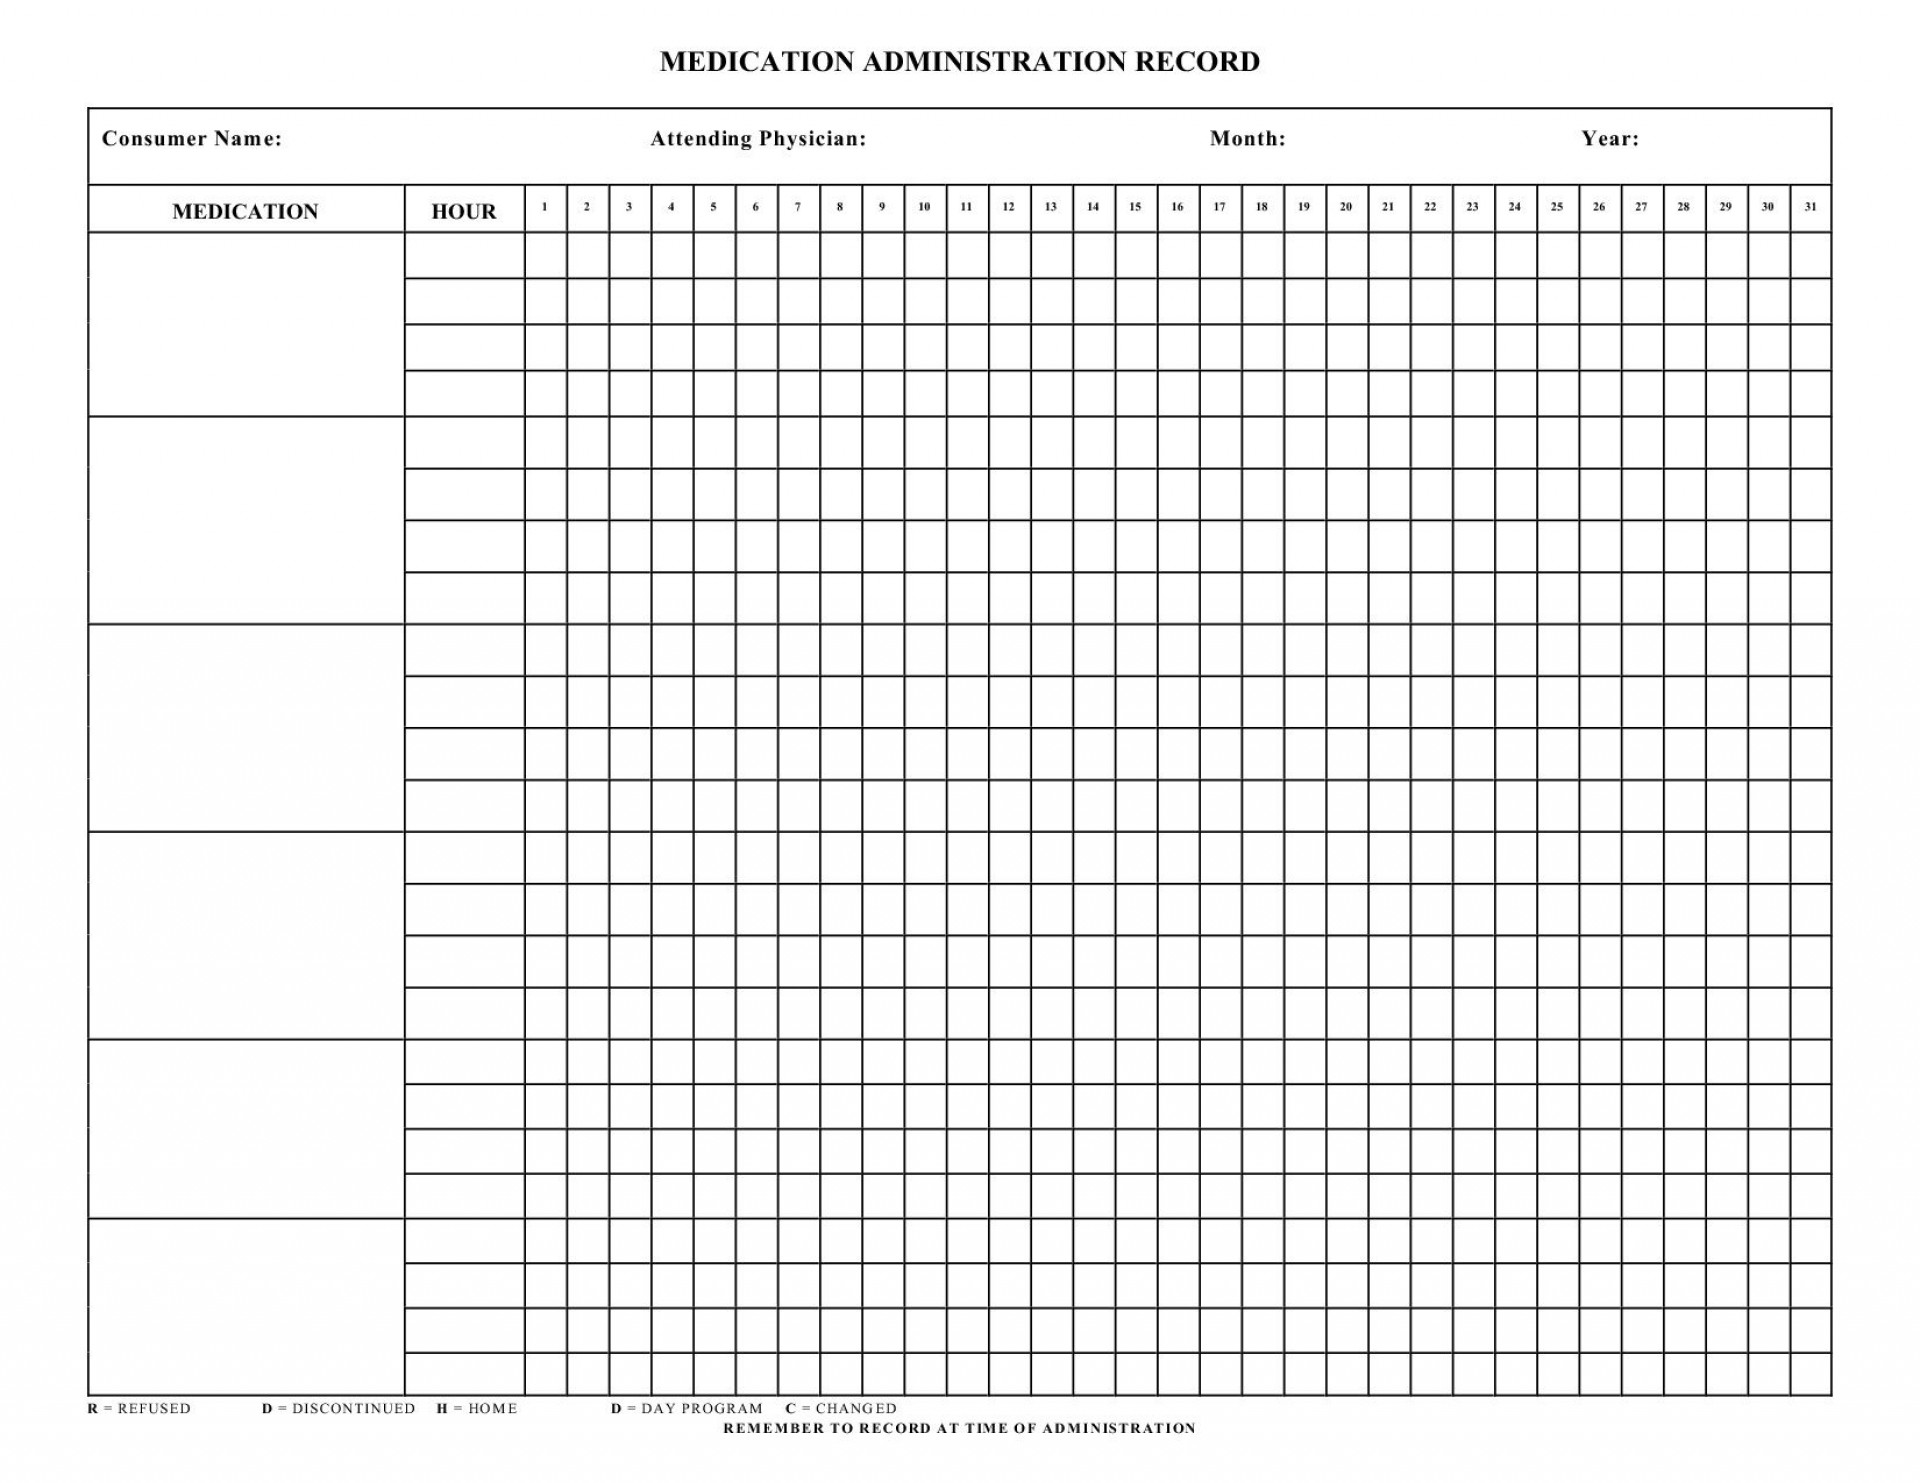 004 Staggering Medication Administration Record Template Excel Idea  Monthly1920